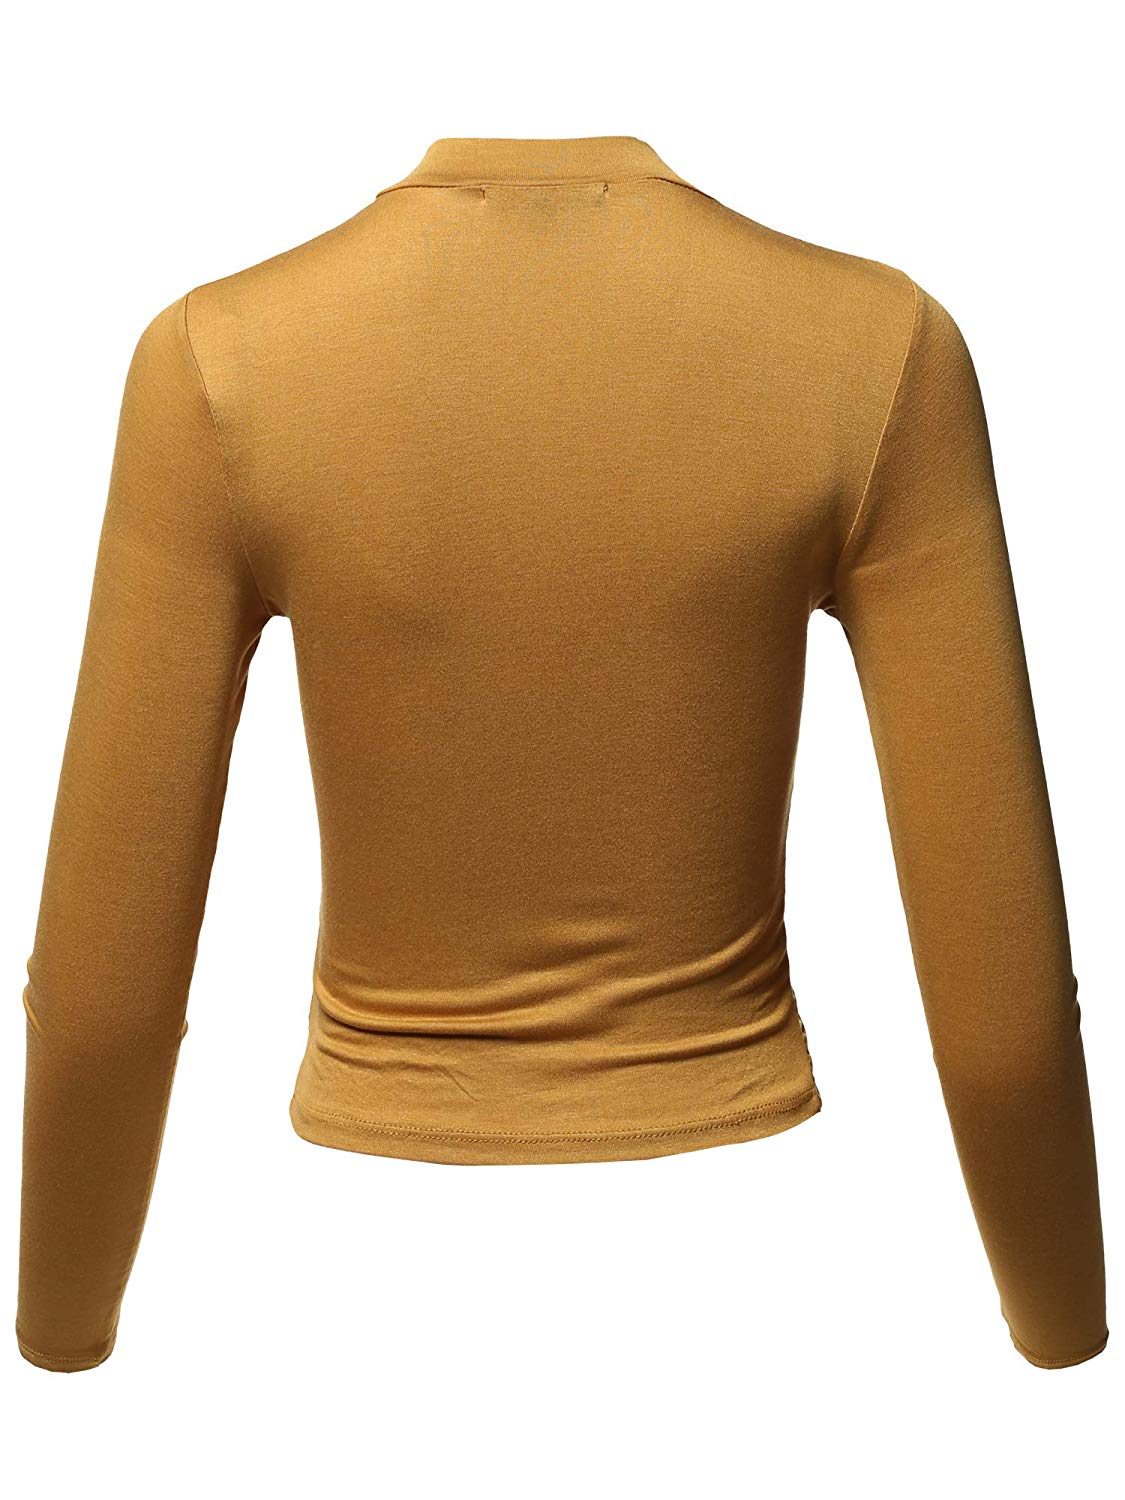 10 Piece Women s Solid Basic Sleeve Neck Top long sleeve crop top Cotton Casual Broadcloth